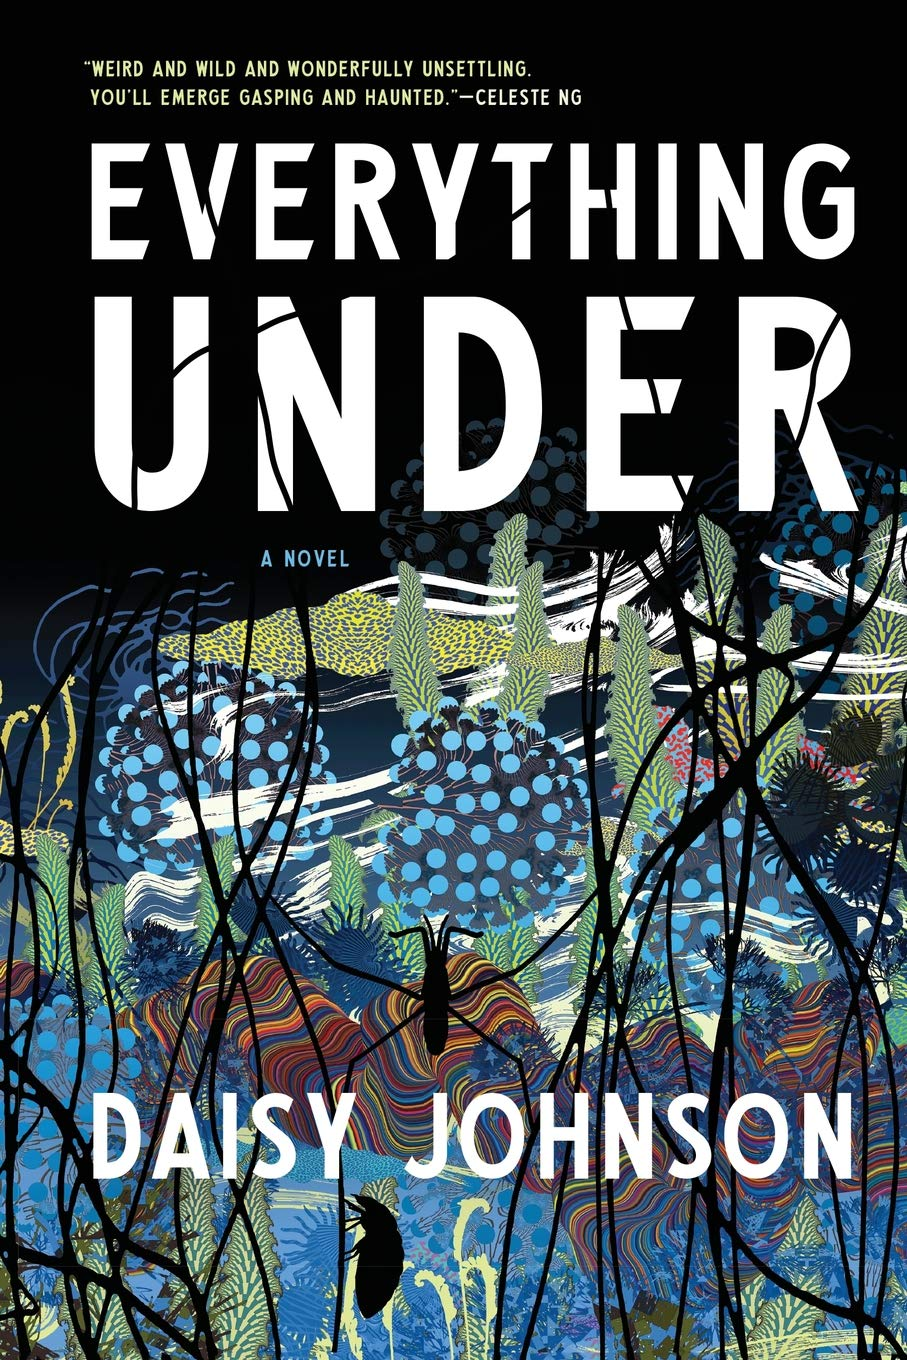 Daisy Johnson's novel, Everything Under in which a mother and daughter escape a monster.